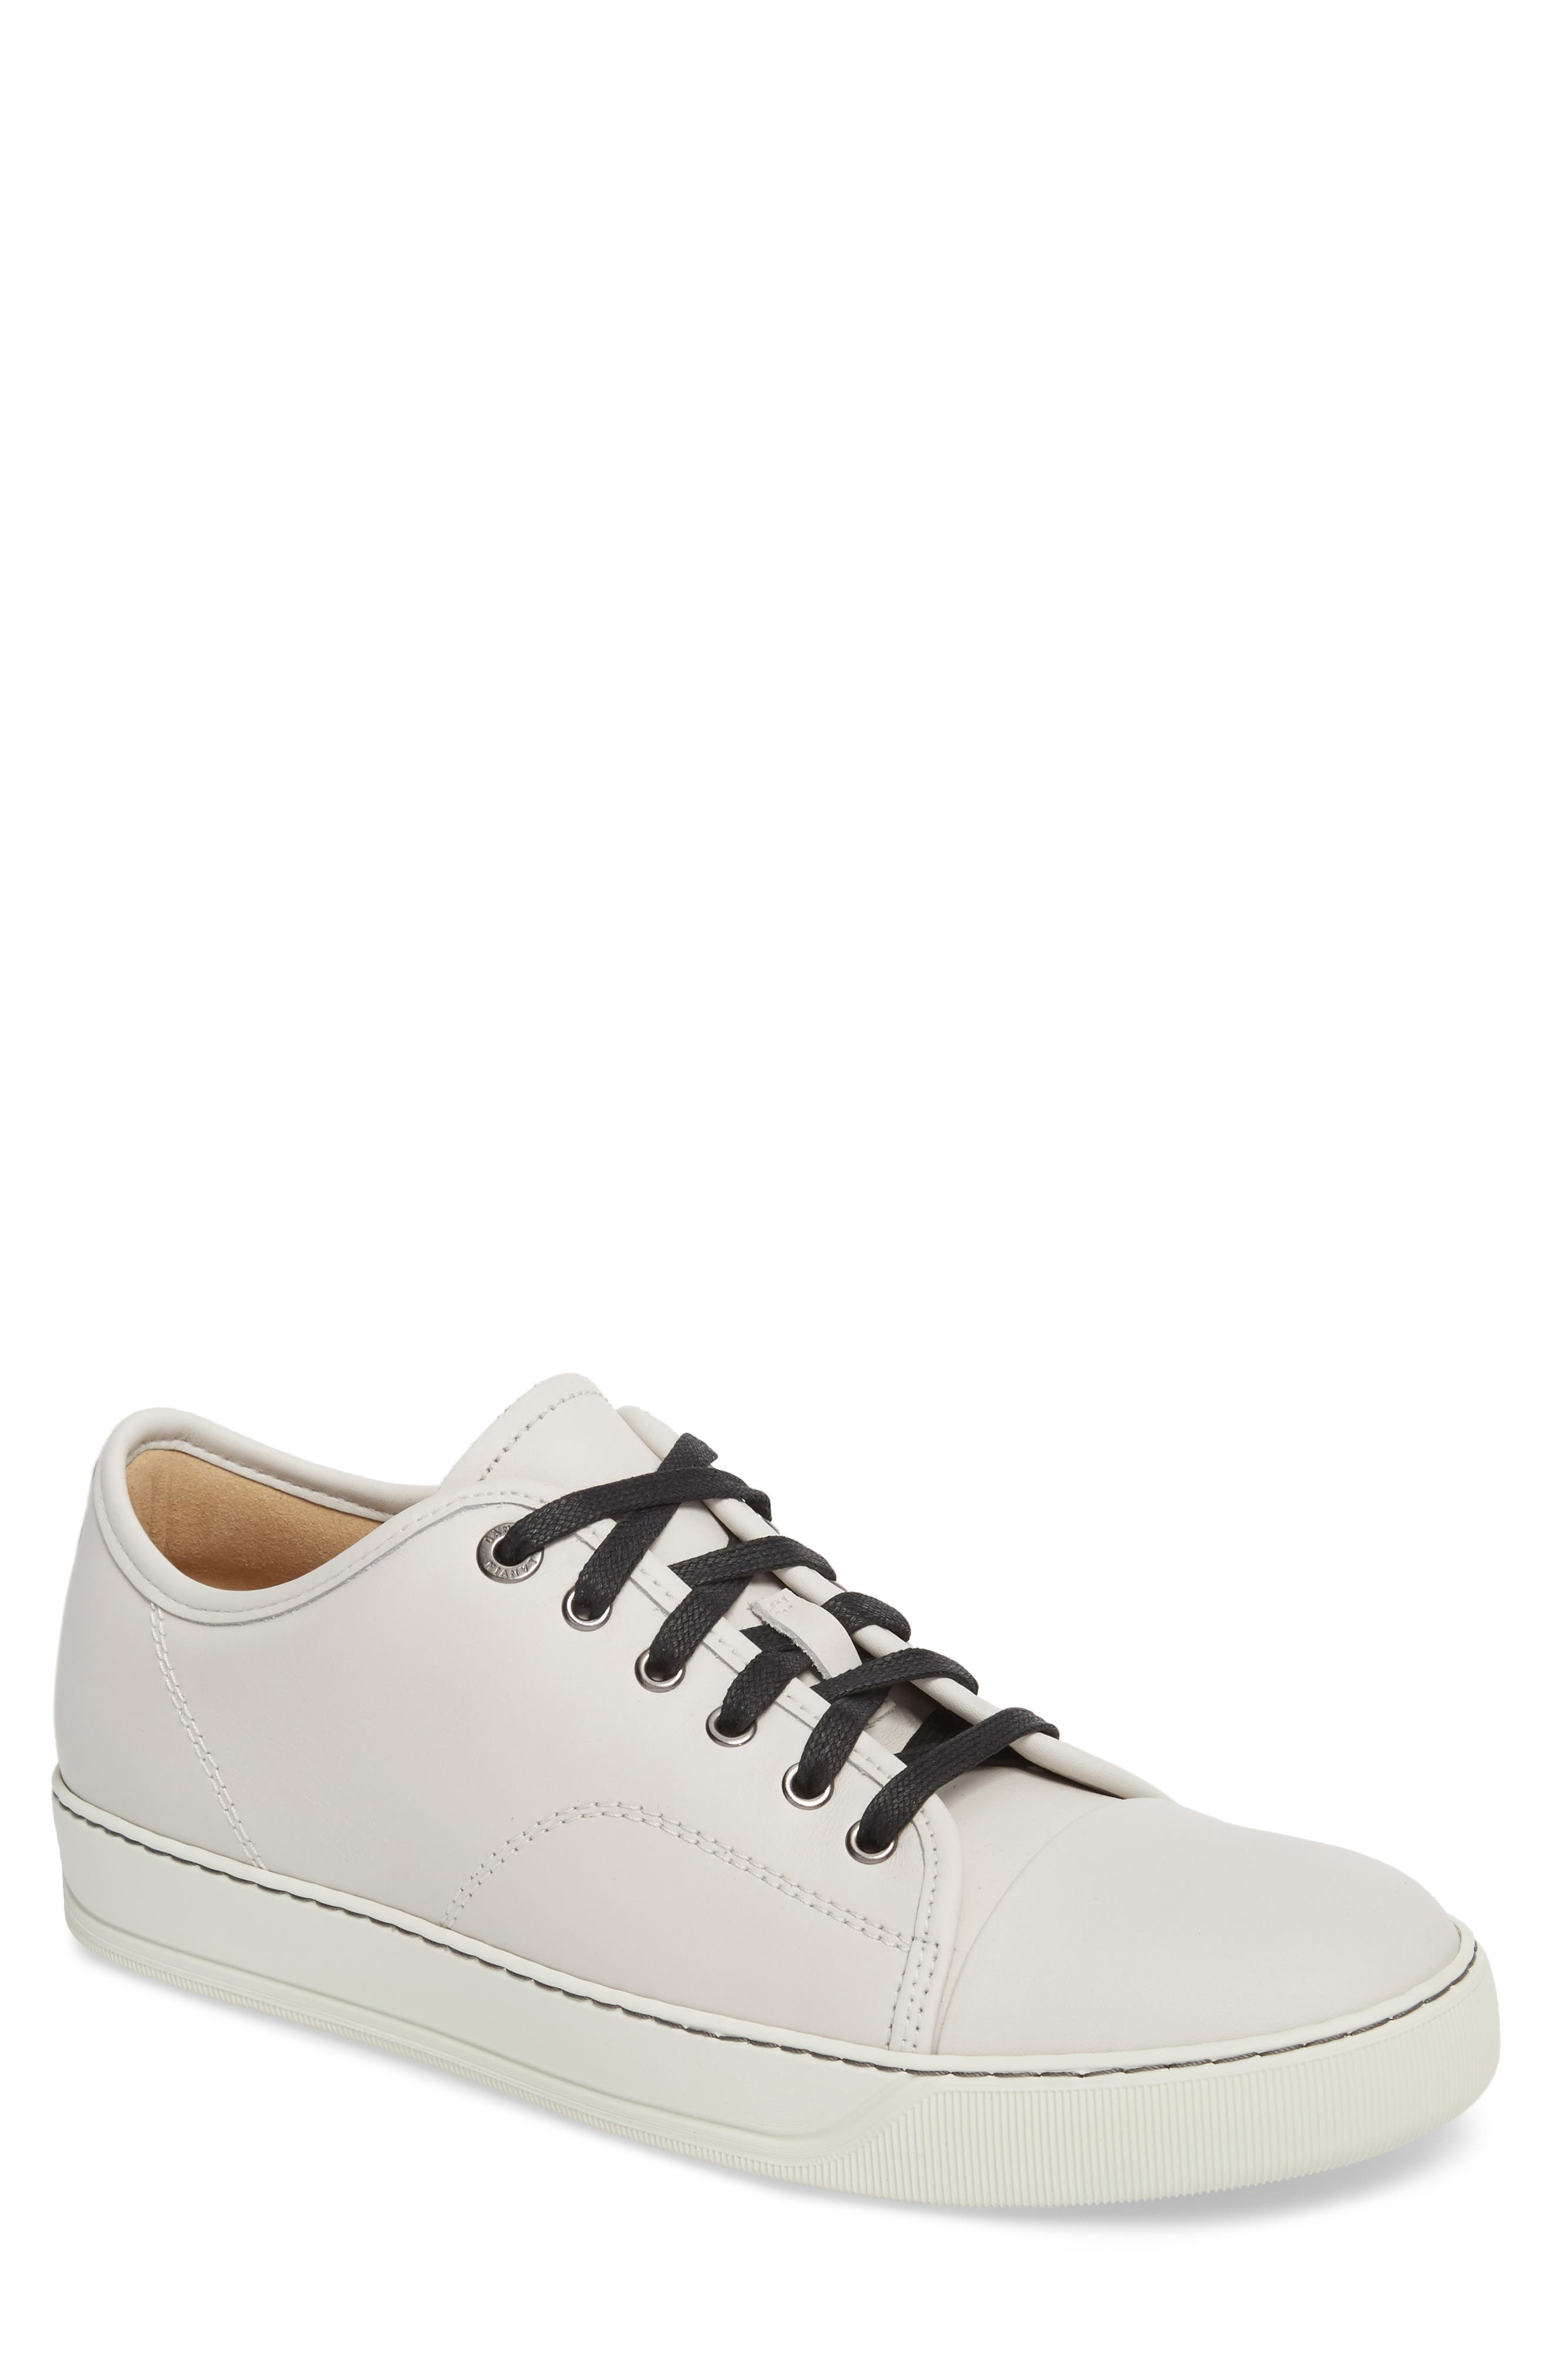 Low Top Sneaker,                         Main,                         color, Chalk Leather